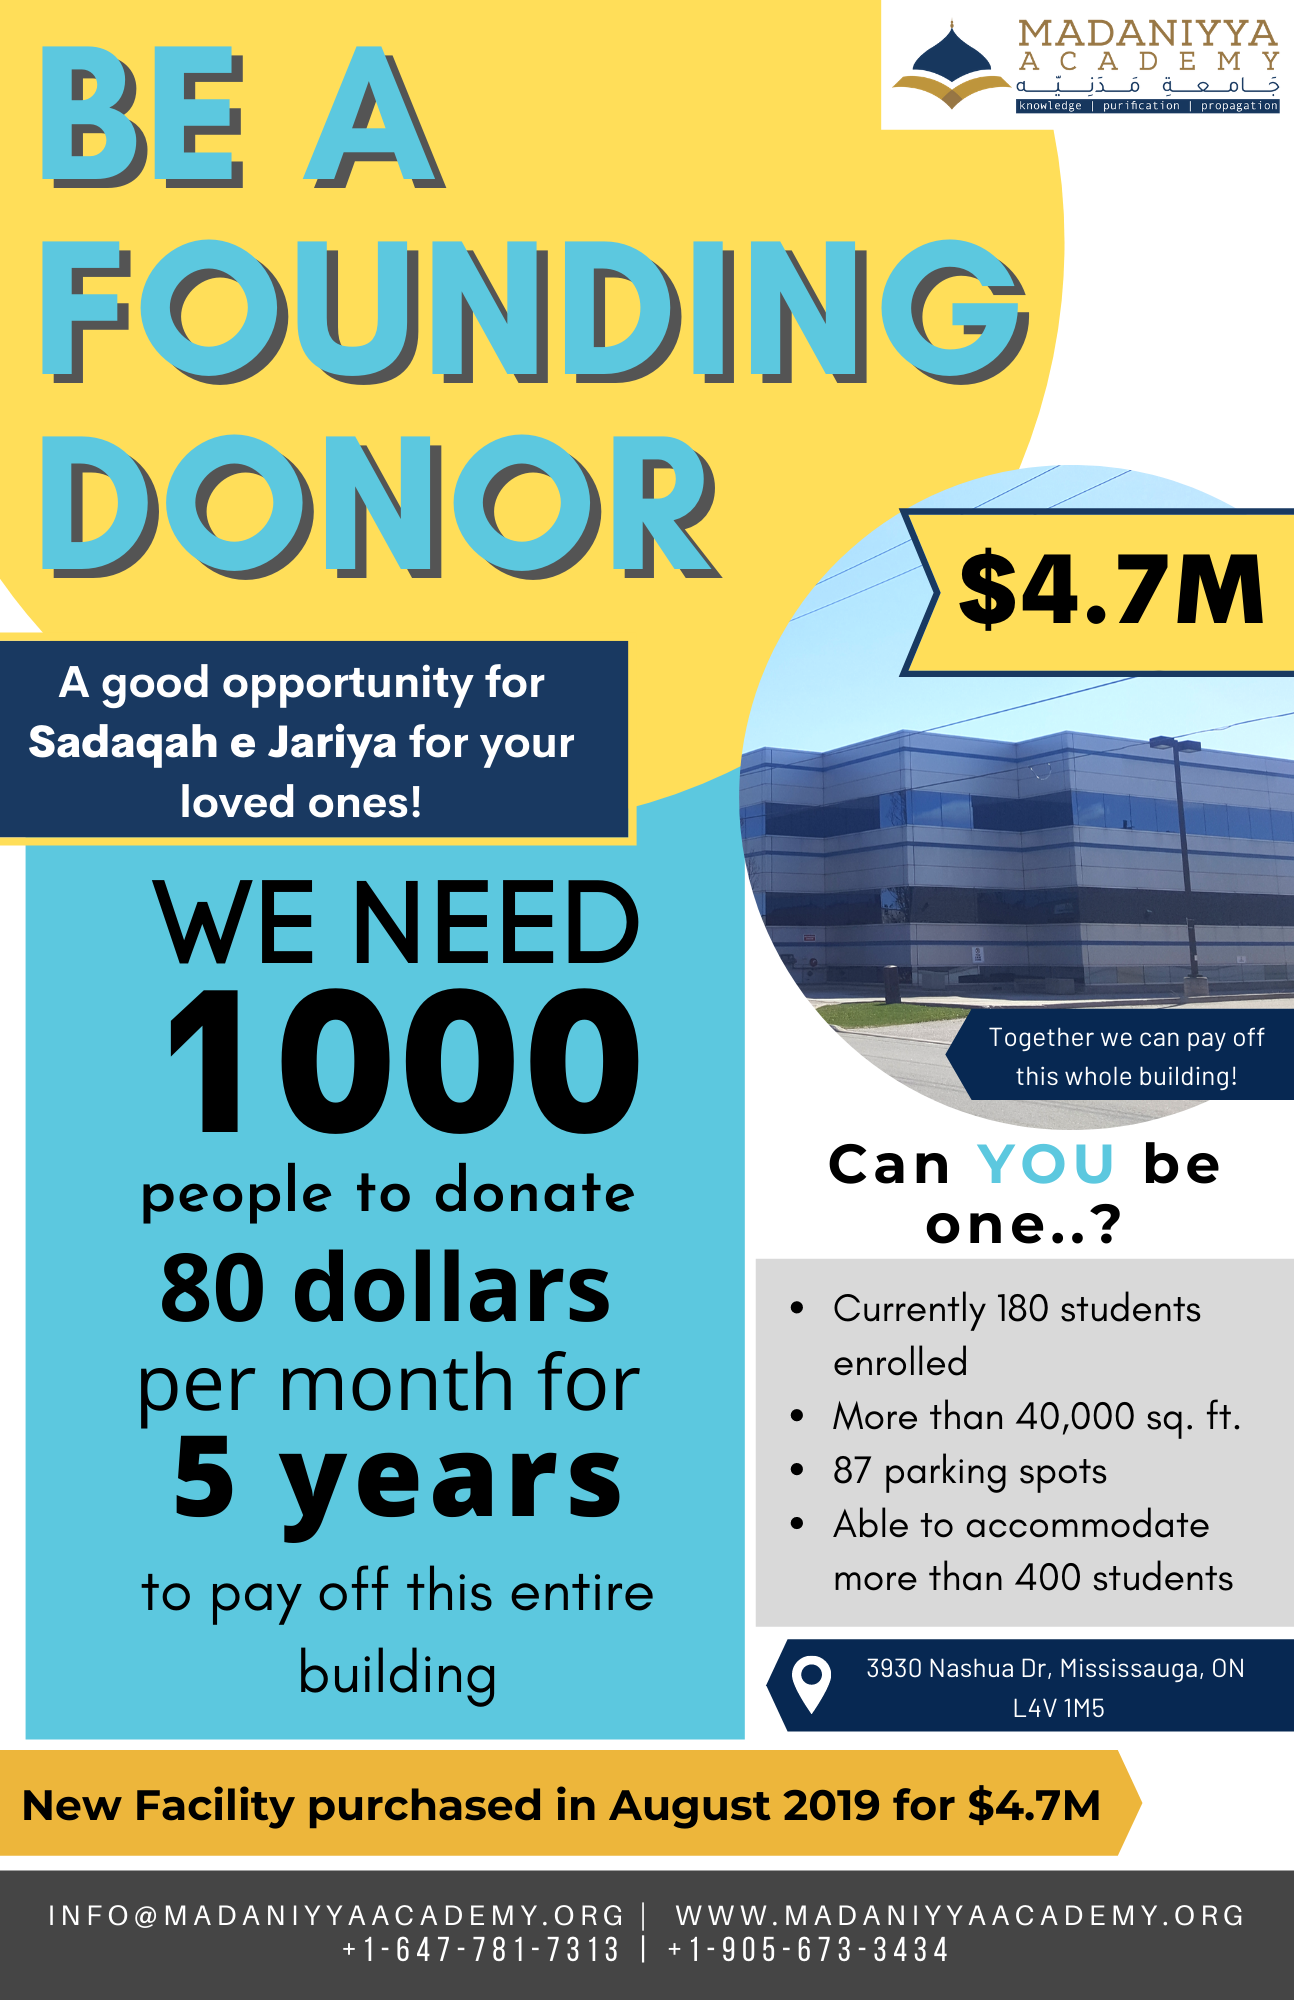 We need 1000 donors to donate $5000 each over the period of 5 years. This will help pay off the building in full Inshallah within 5 years. Donate and earn the reward of Thousands of students who will read Quran Hadith and peactise deen forever. Realize the potential and imagine your reward.